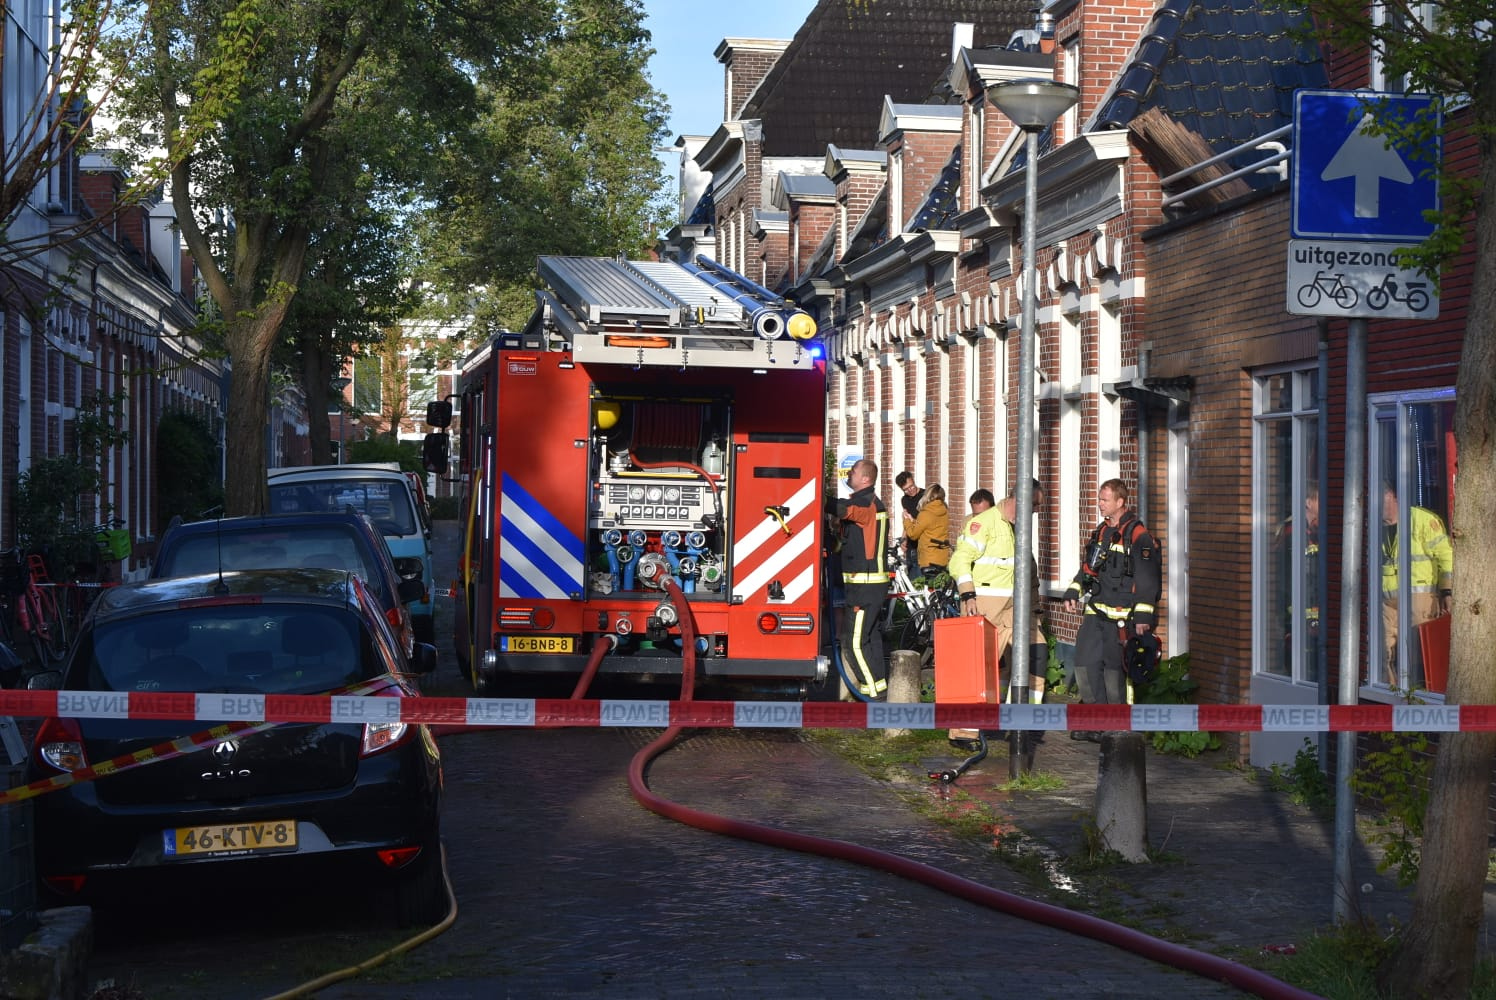 Brand selwerderstraat 2020 04 30 at 07.41